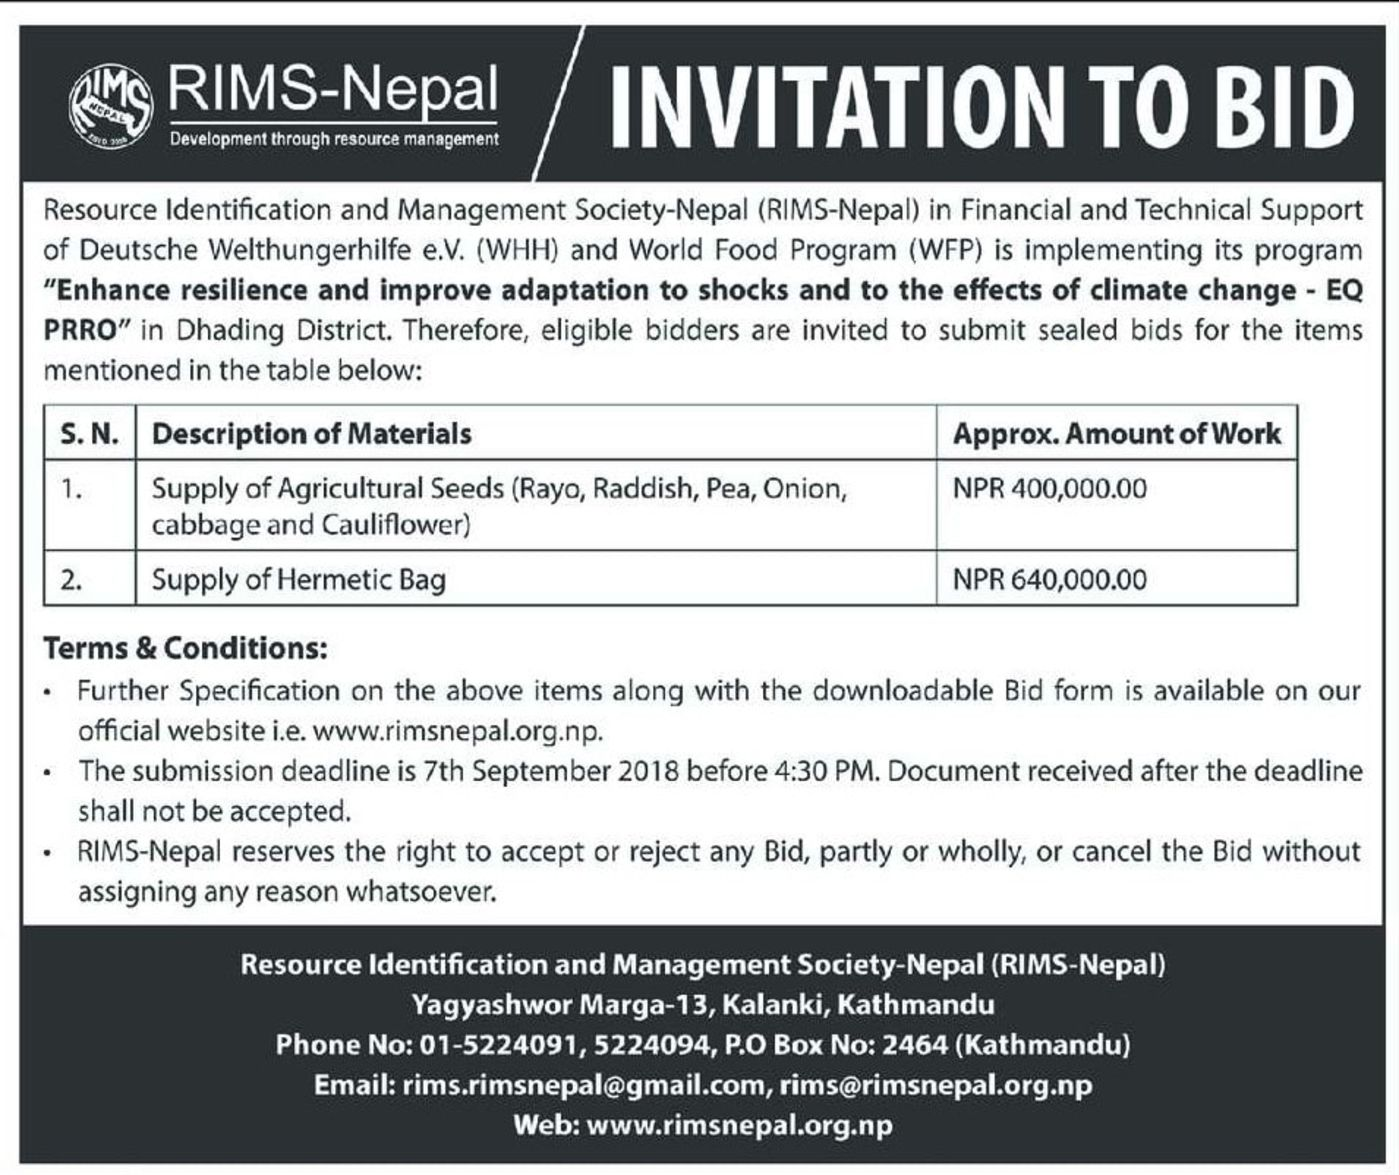 Bids and Tenders Nepal - NGO Bids - Supply of Agricultural Seeds